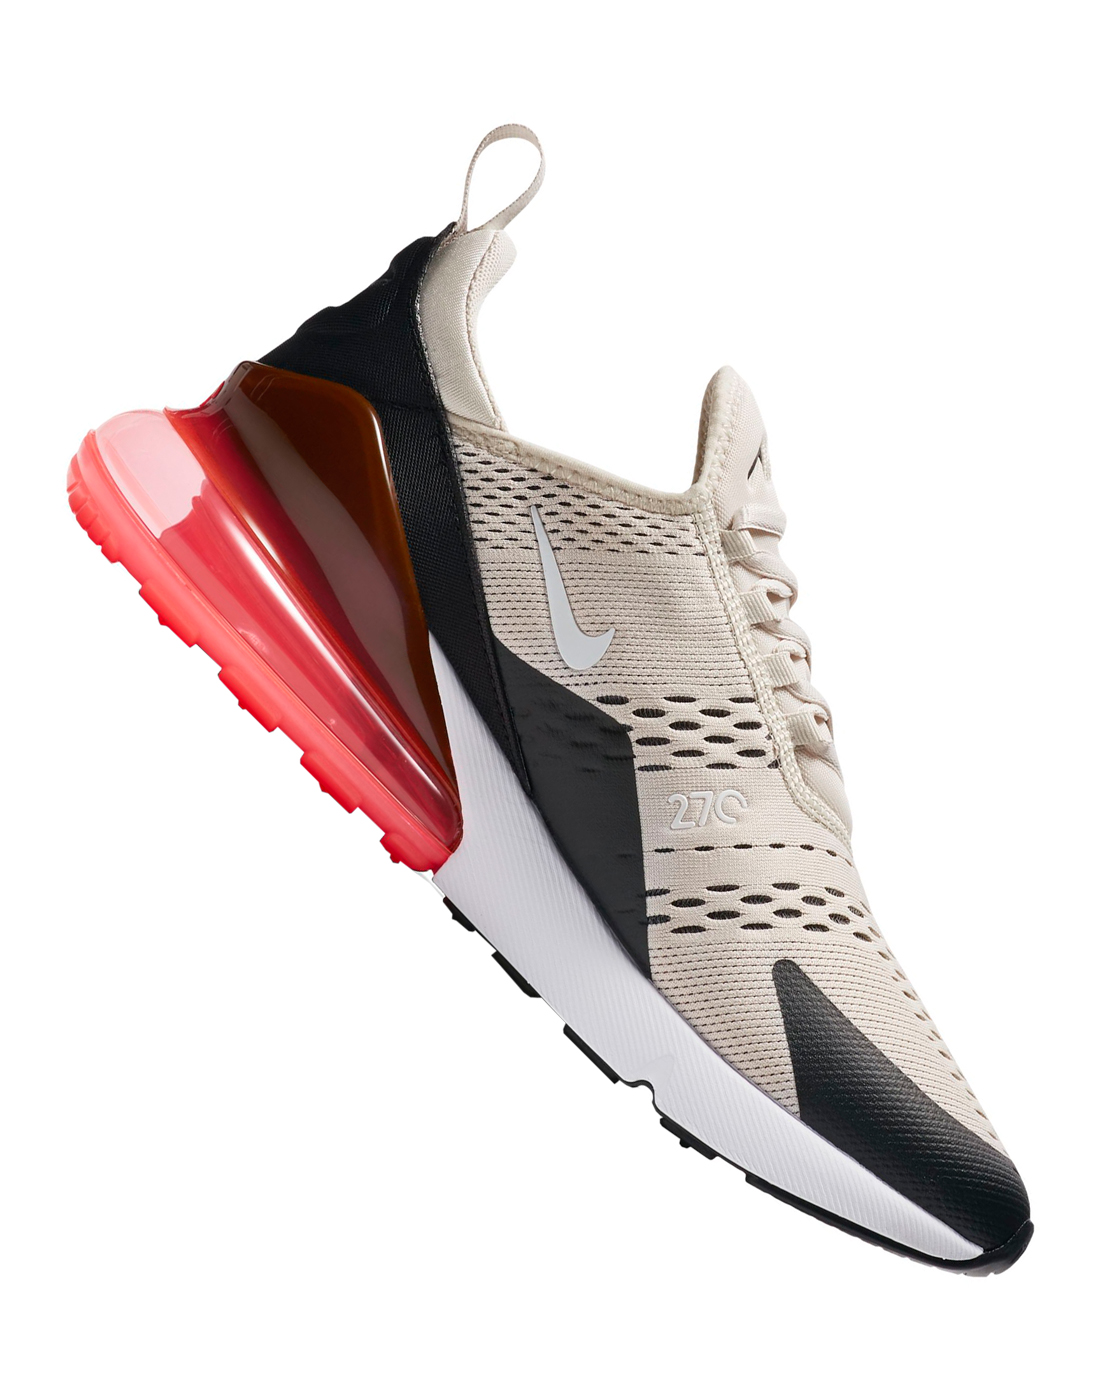 check out united states hot sale Men's Nike Air Max 270 Trainers | White | Life Style Sports